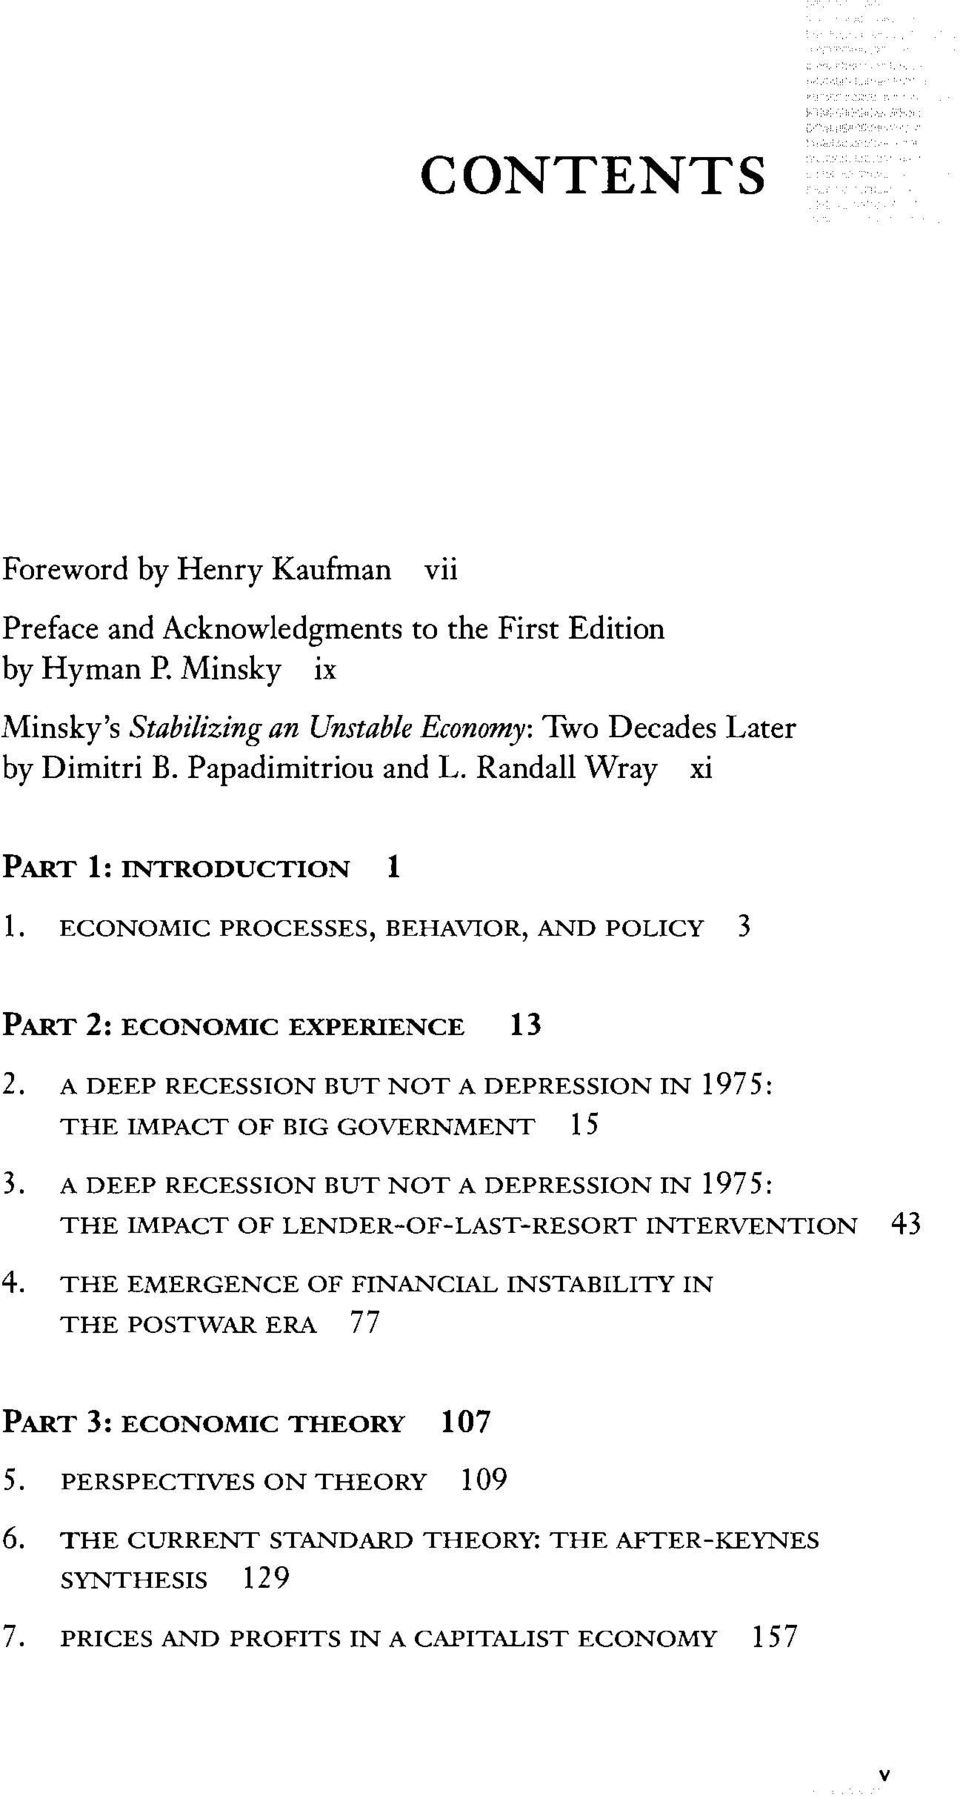 A DEEP RECESSION BUT NOT A DEPRESSION IN 1975: THE IMPACT OF BIG GOVERNMENT 15 3. A DEEP RECESSION BUT NOT A DEPRESSION IN 1975: THE IMPACT OF LENDER-OF-LAST-RESORT INTERVENTION 43 4.